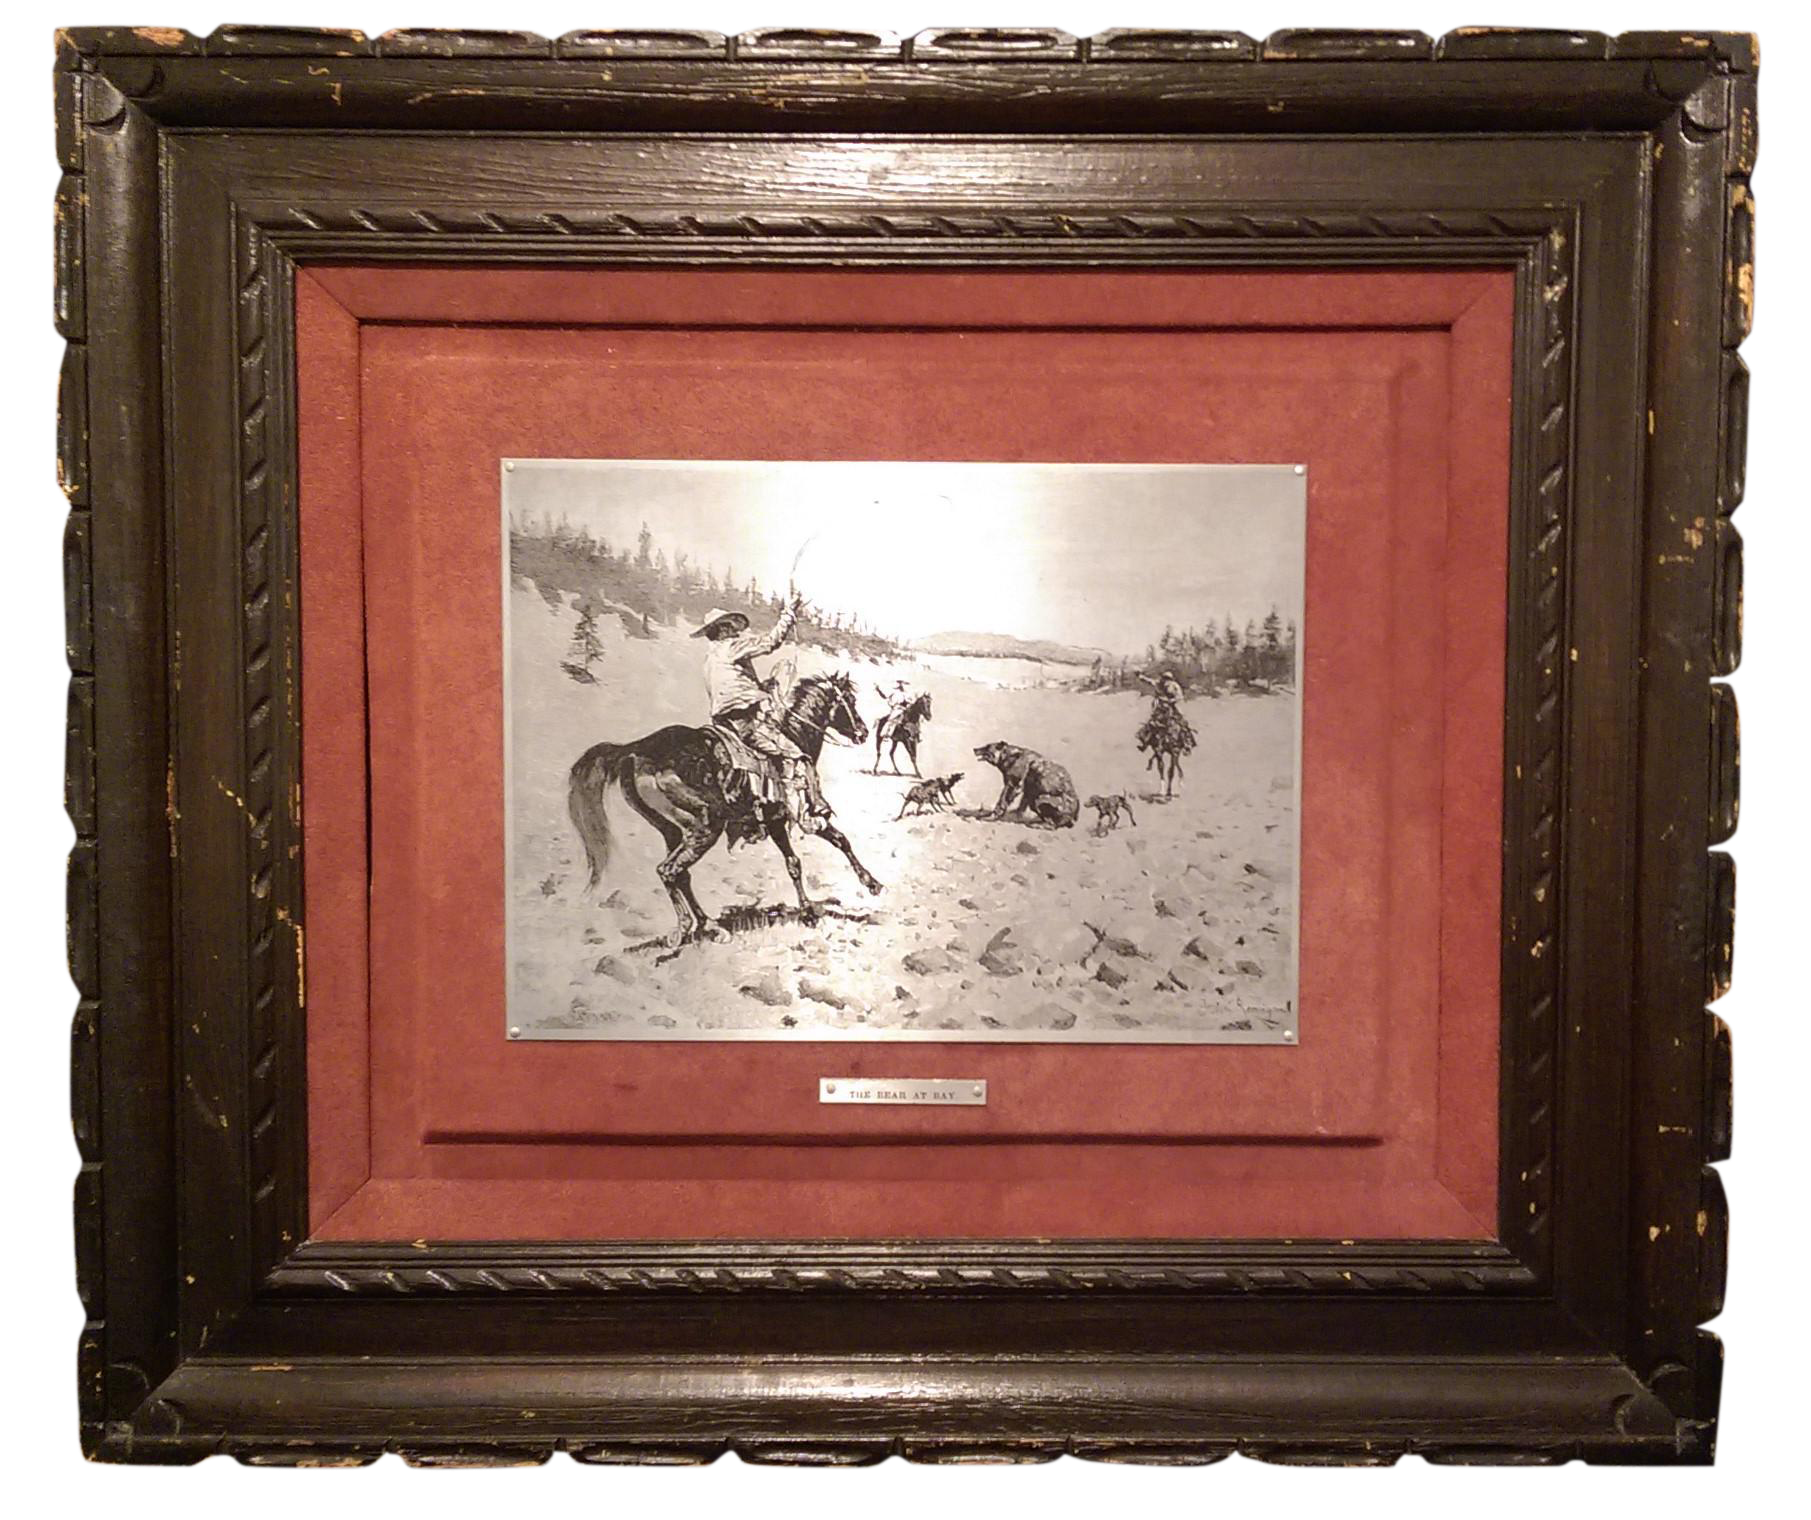 1969 Frederic Remington Steel Plate Etching Chairish